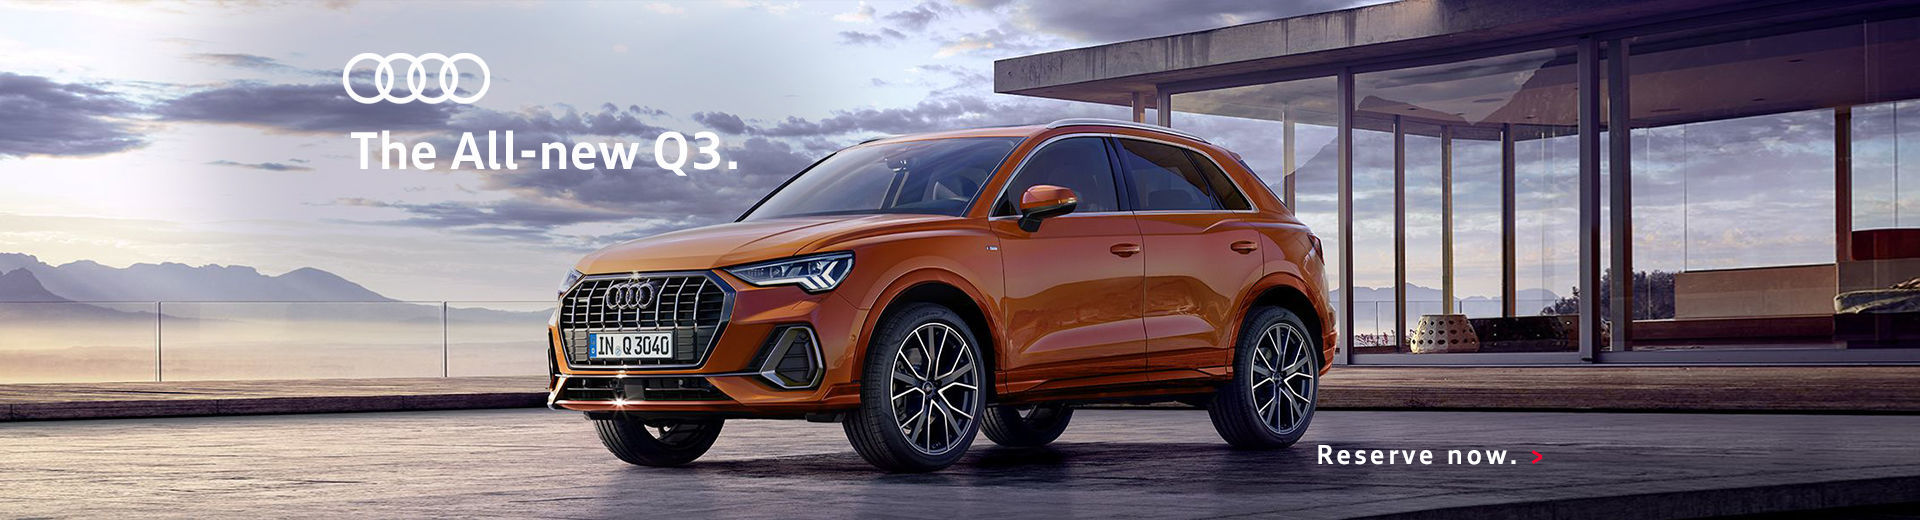 All new Q3